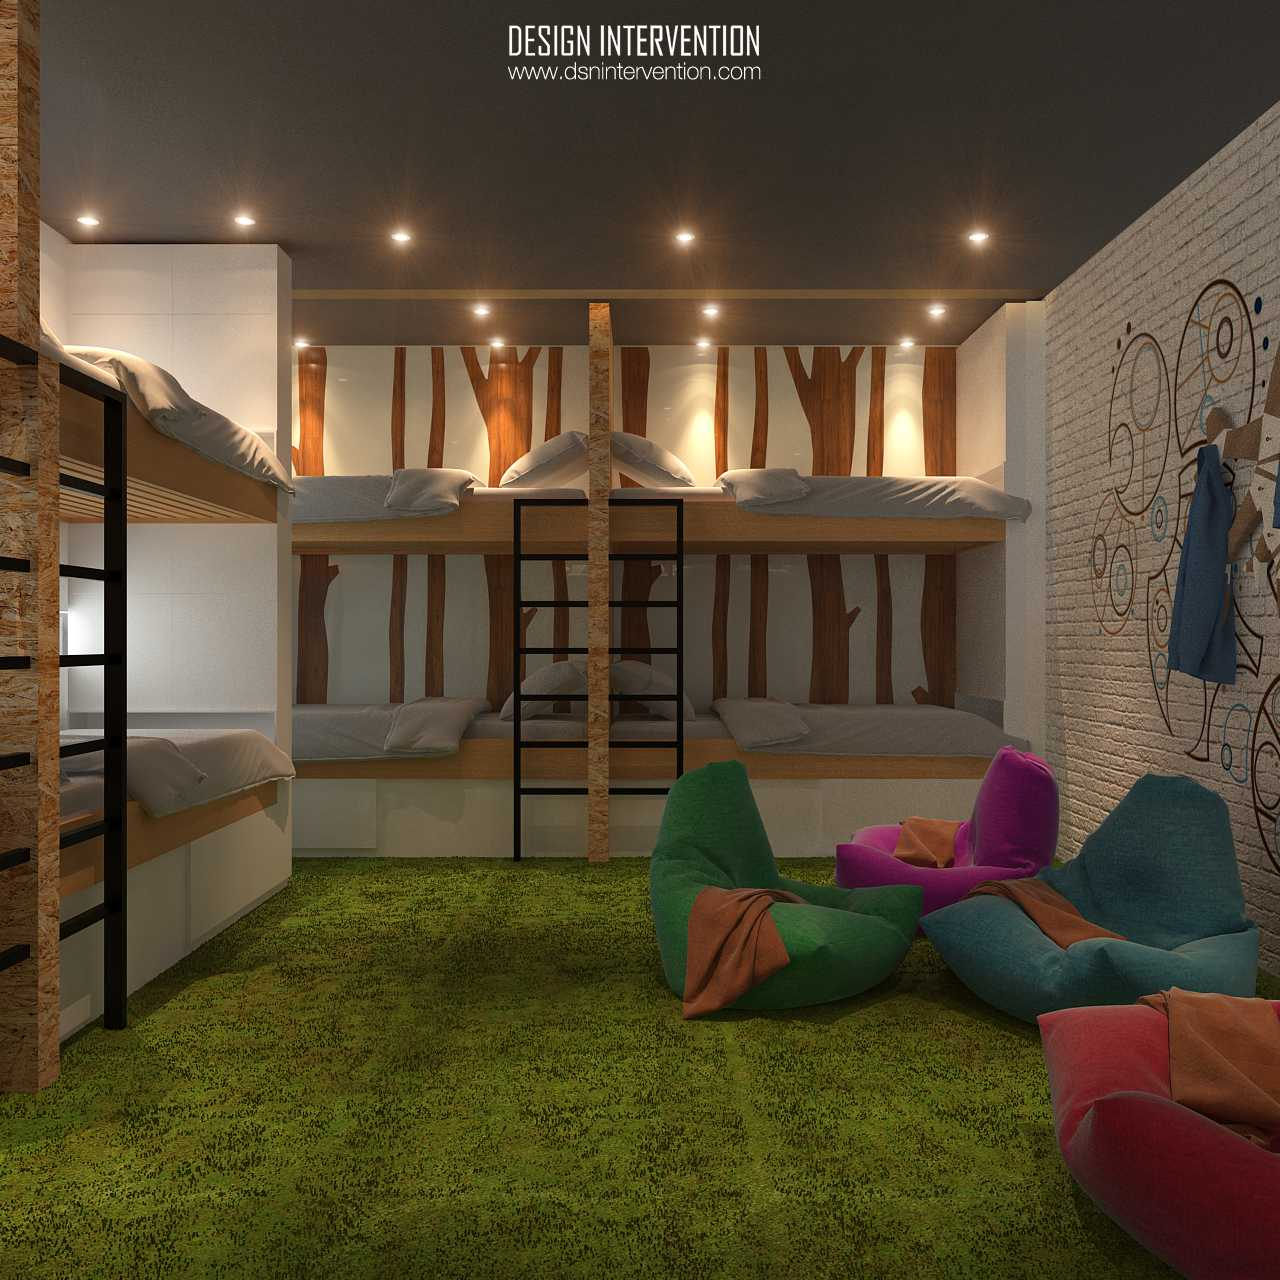 Design Intervention B Hostel Bali Bali Bunk-View  14025